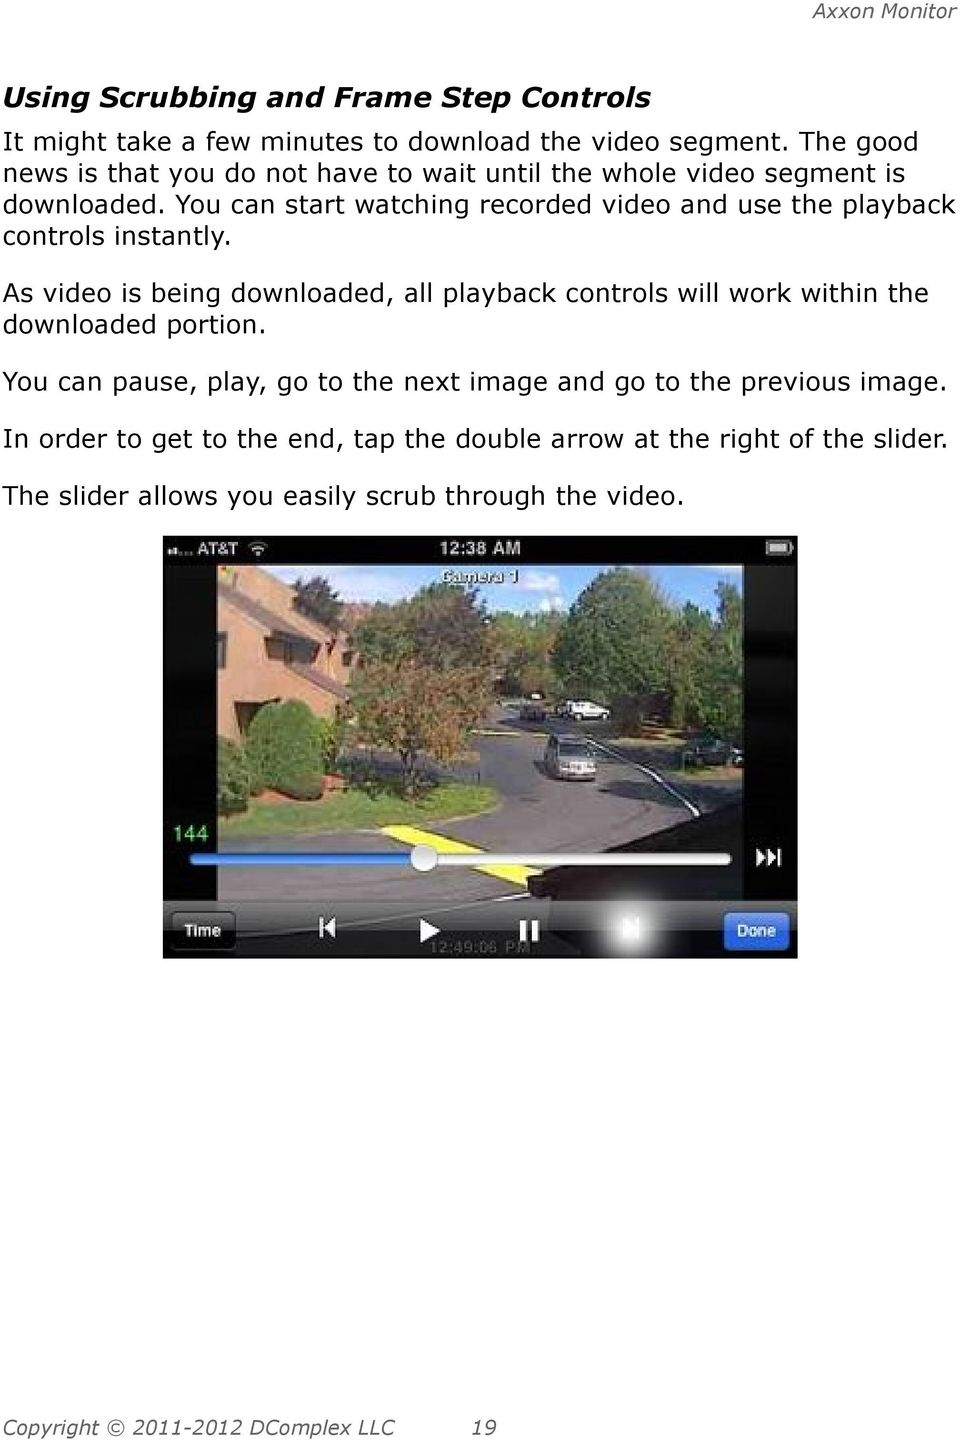 You can start watching recorded video and use the playback controls instantly.